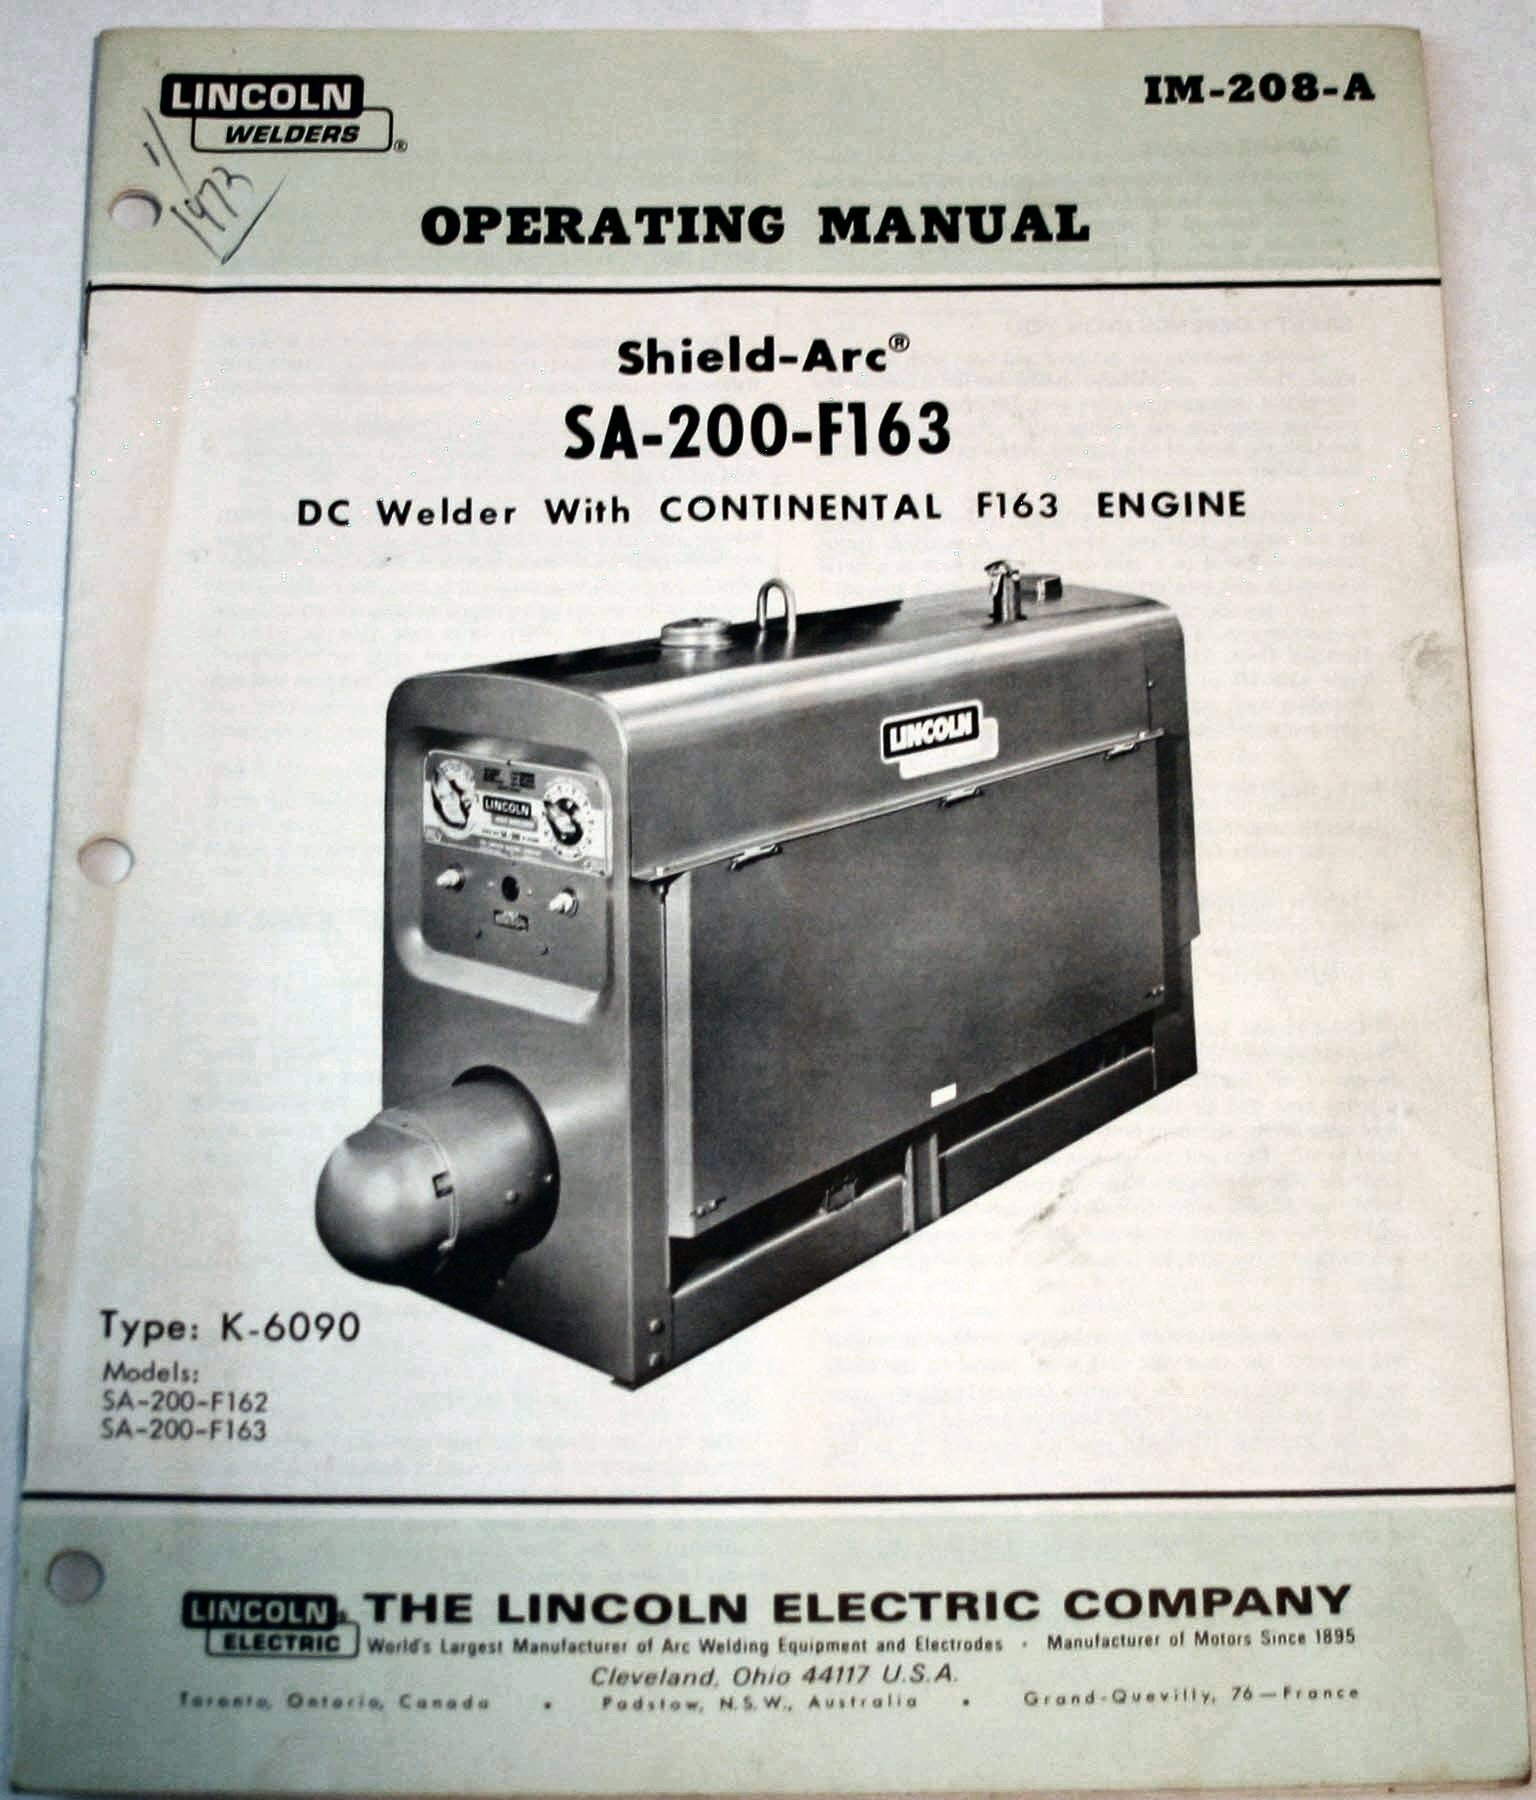 Shield-Arc SA-200-F163 DC Welder With Continental F163 Engine - Operating  Manual: The Lincoln Electric Company: Amazon.com: Books